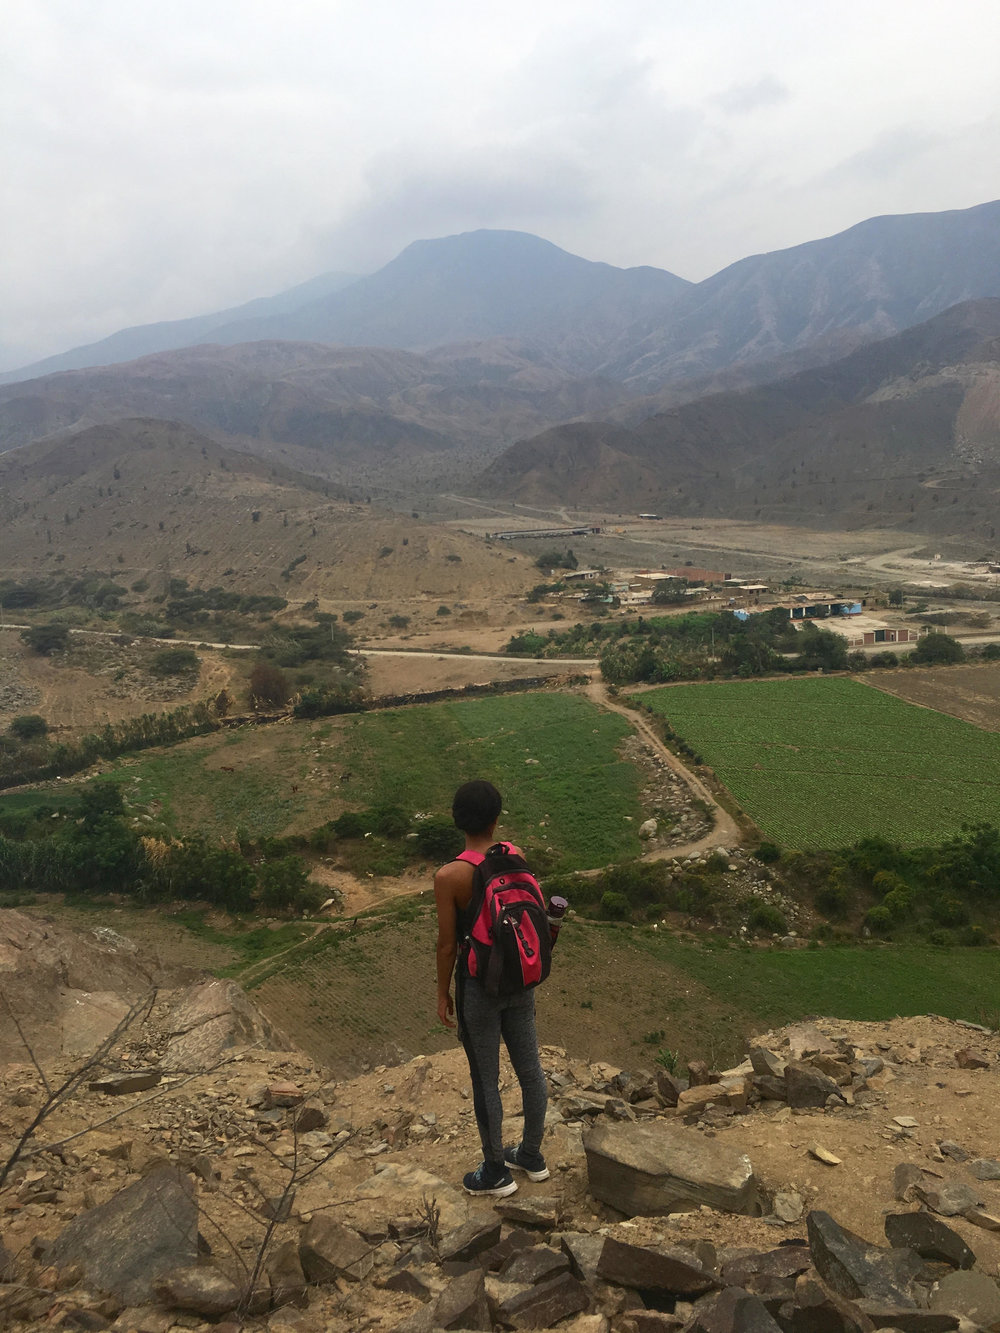 Hiking in Simbal, Peru